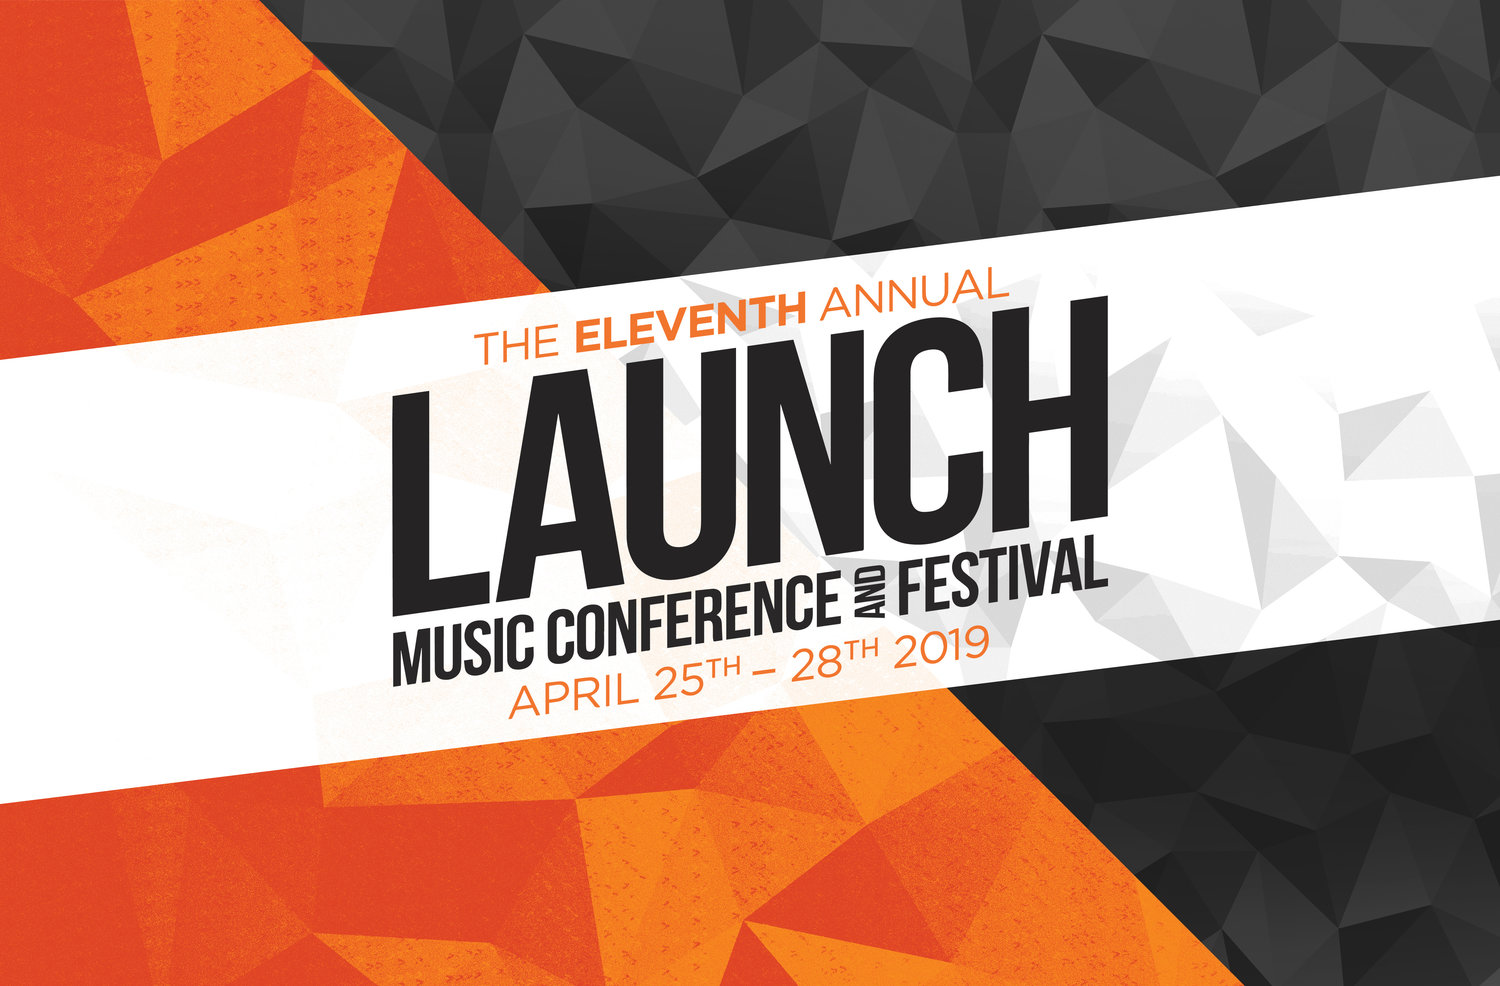 Music conference, music conferences, launch 2019